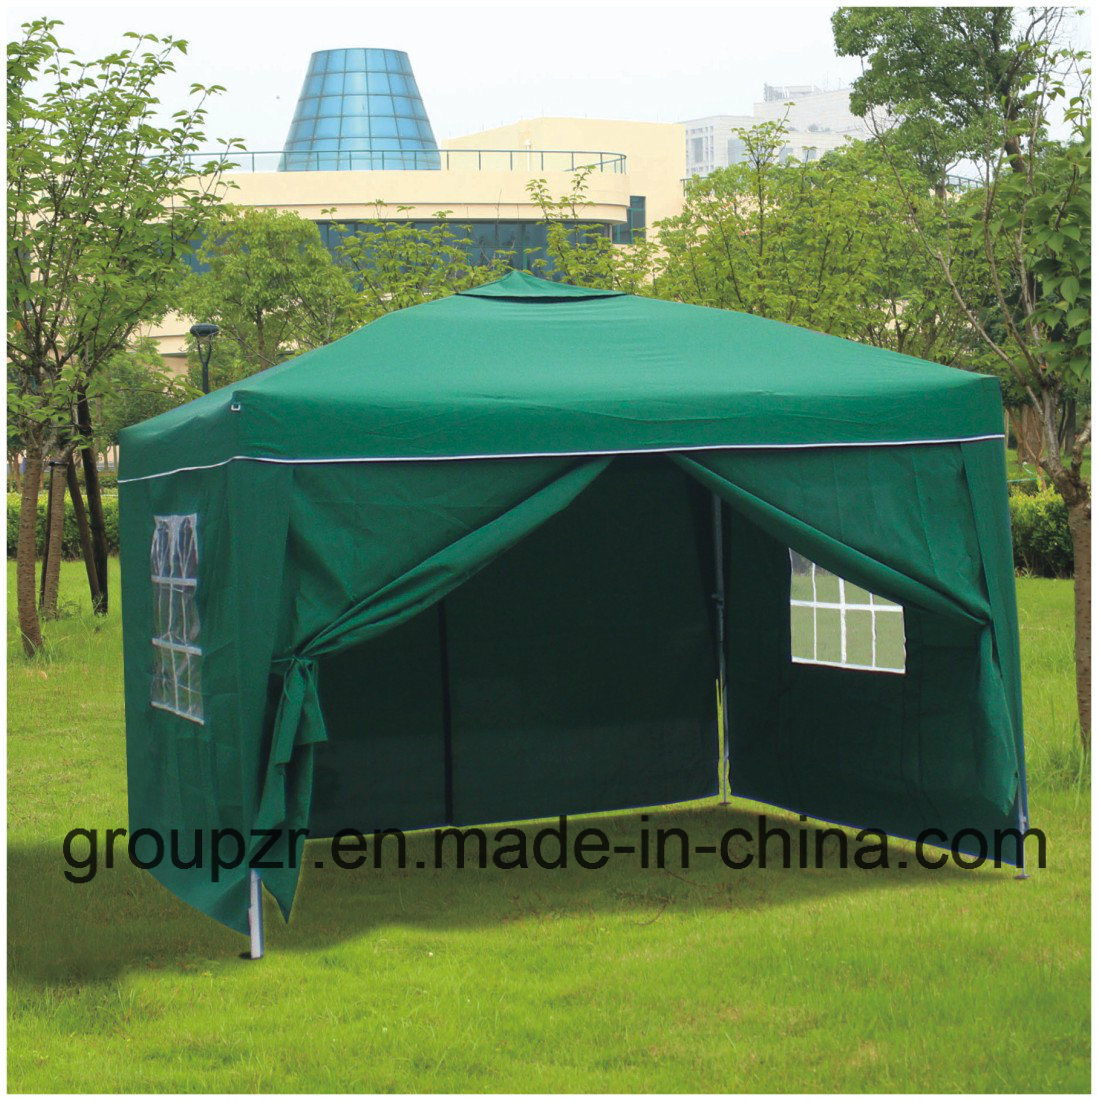 Folding Steel Gazebo with Sidewall